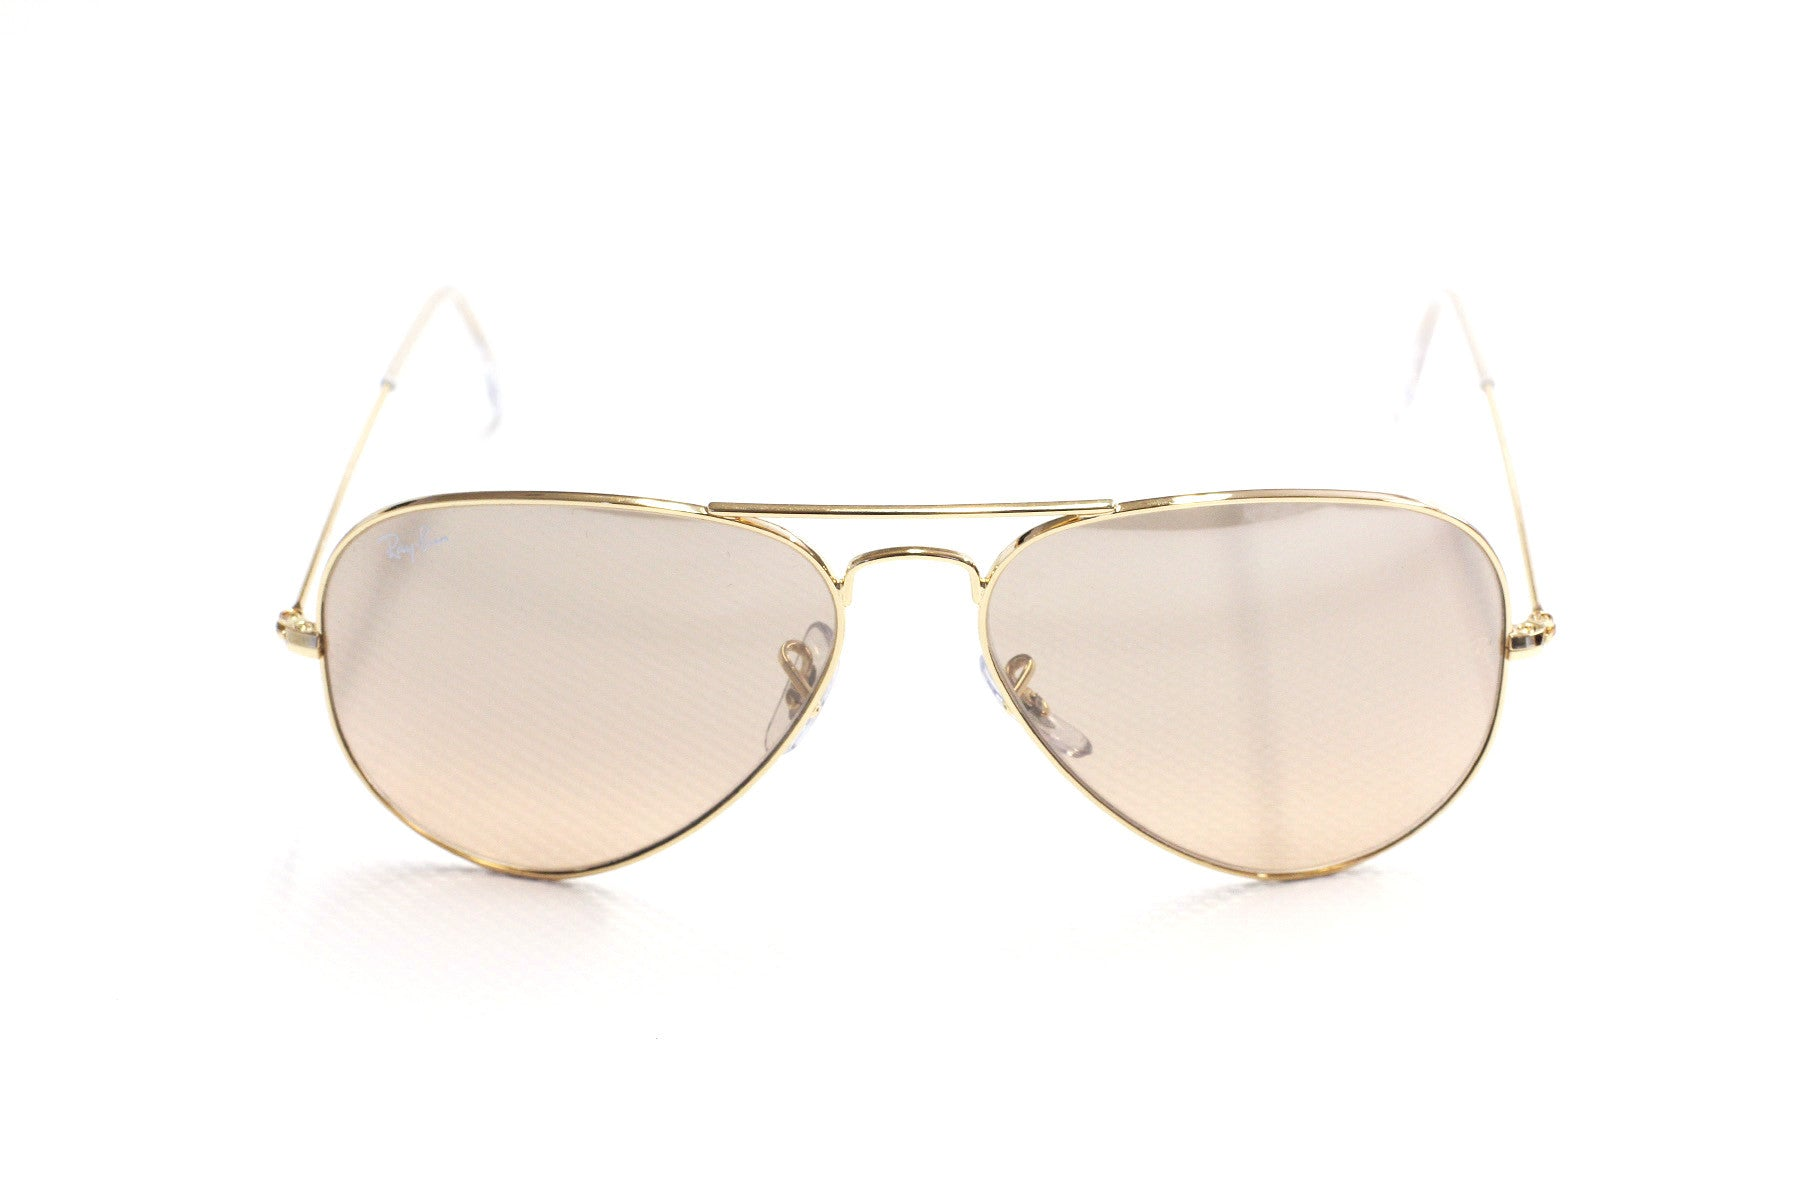 Ray-Ban RB3025 Aviator 001-3E Gold Sunglasses at Enderbys UK